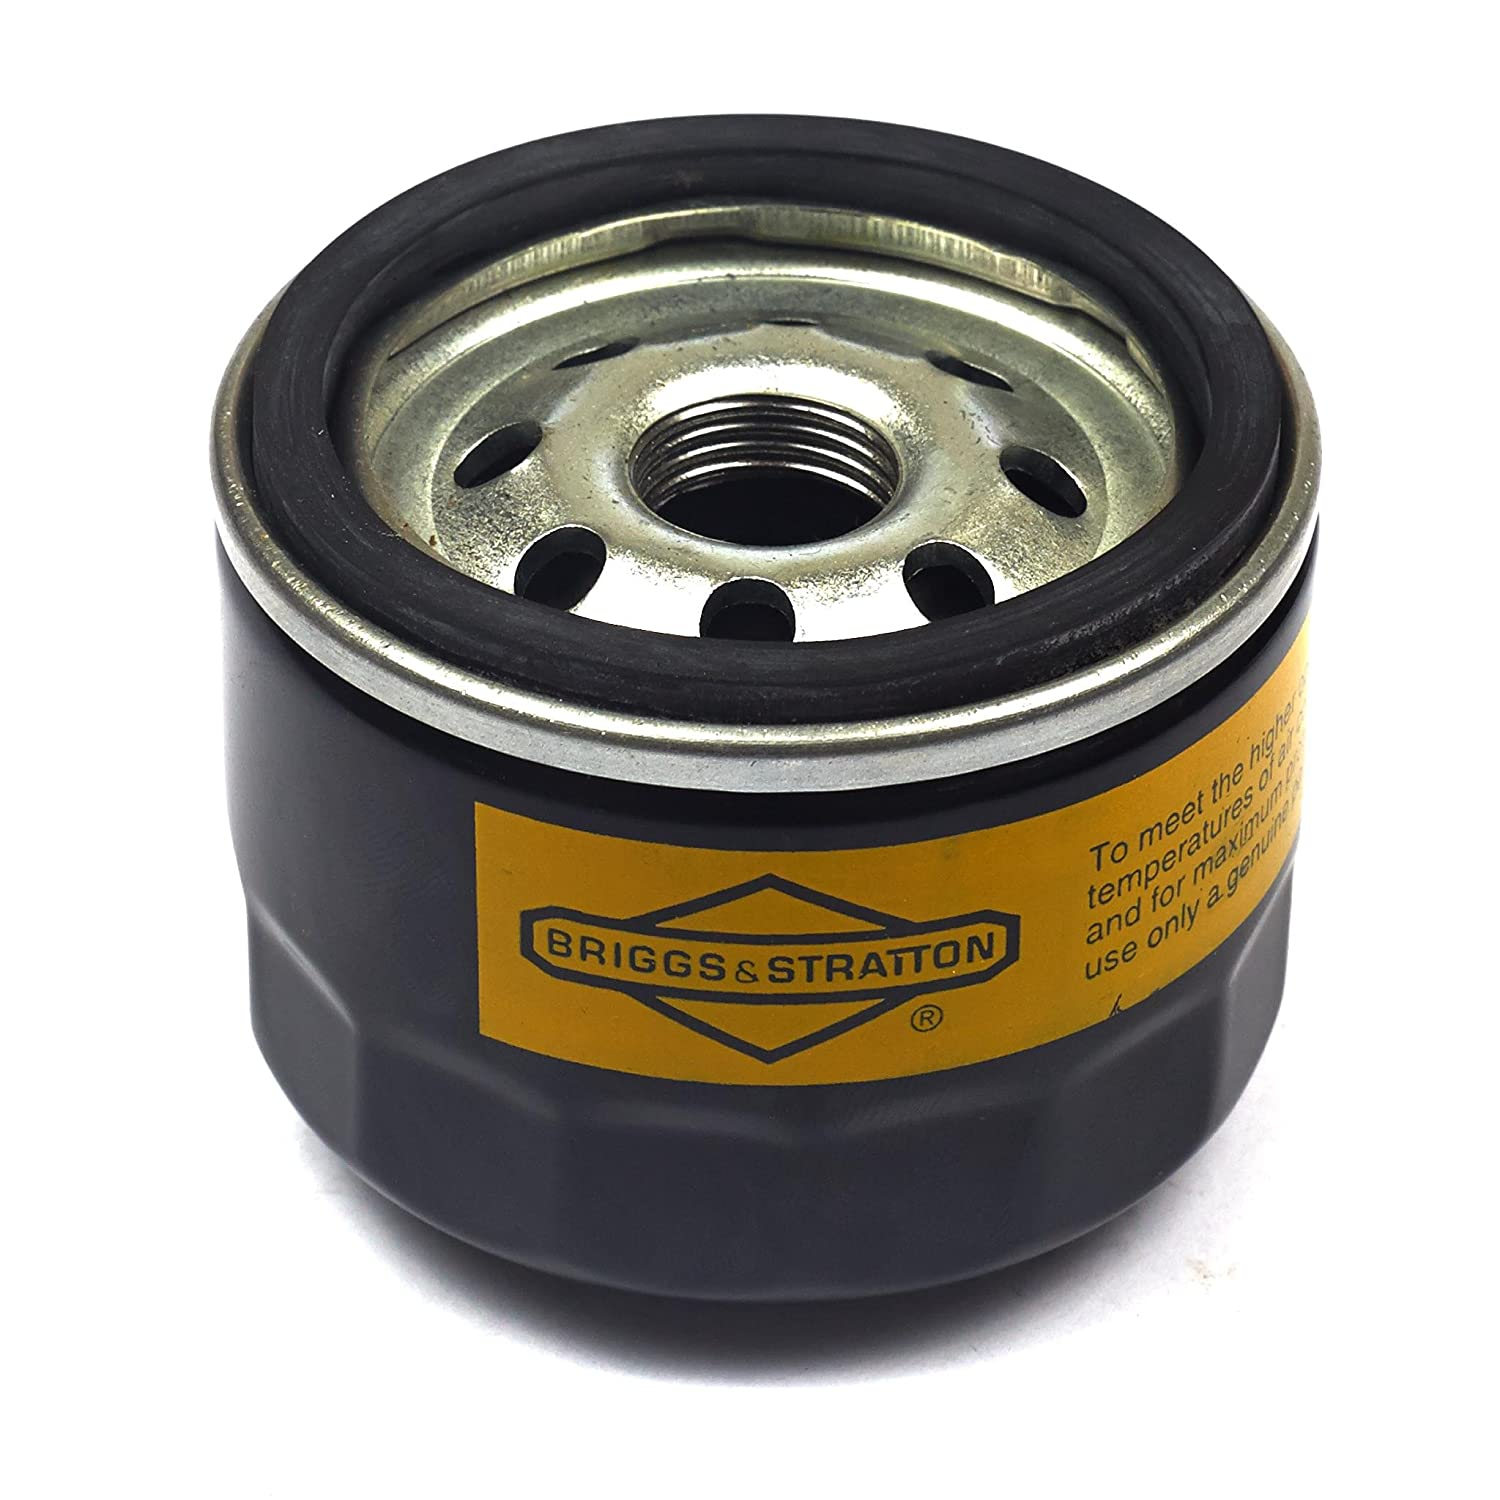 Central Power Sys/Brigg5049KOil Filter-OIL FILTER (並行輸入品) B00004RB1R